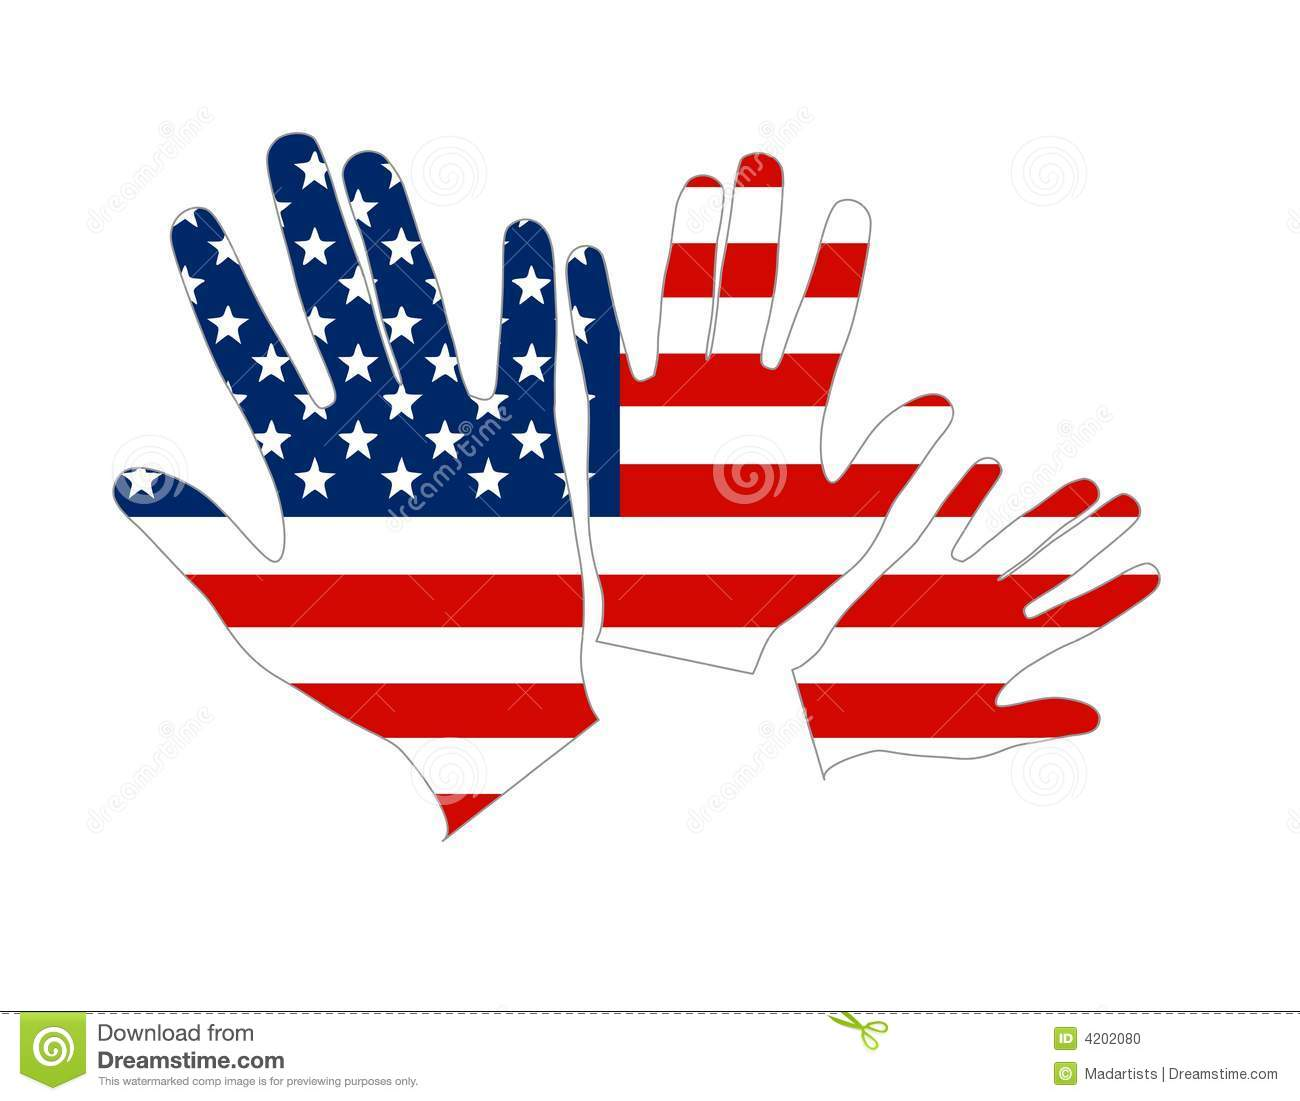 citizenship in america If you have american dual citizenship or are exploring the possibility of having it, there are some important aspects that you should understand.